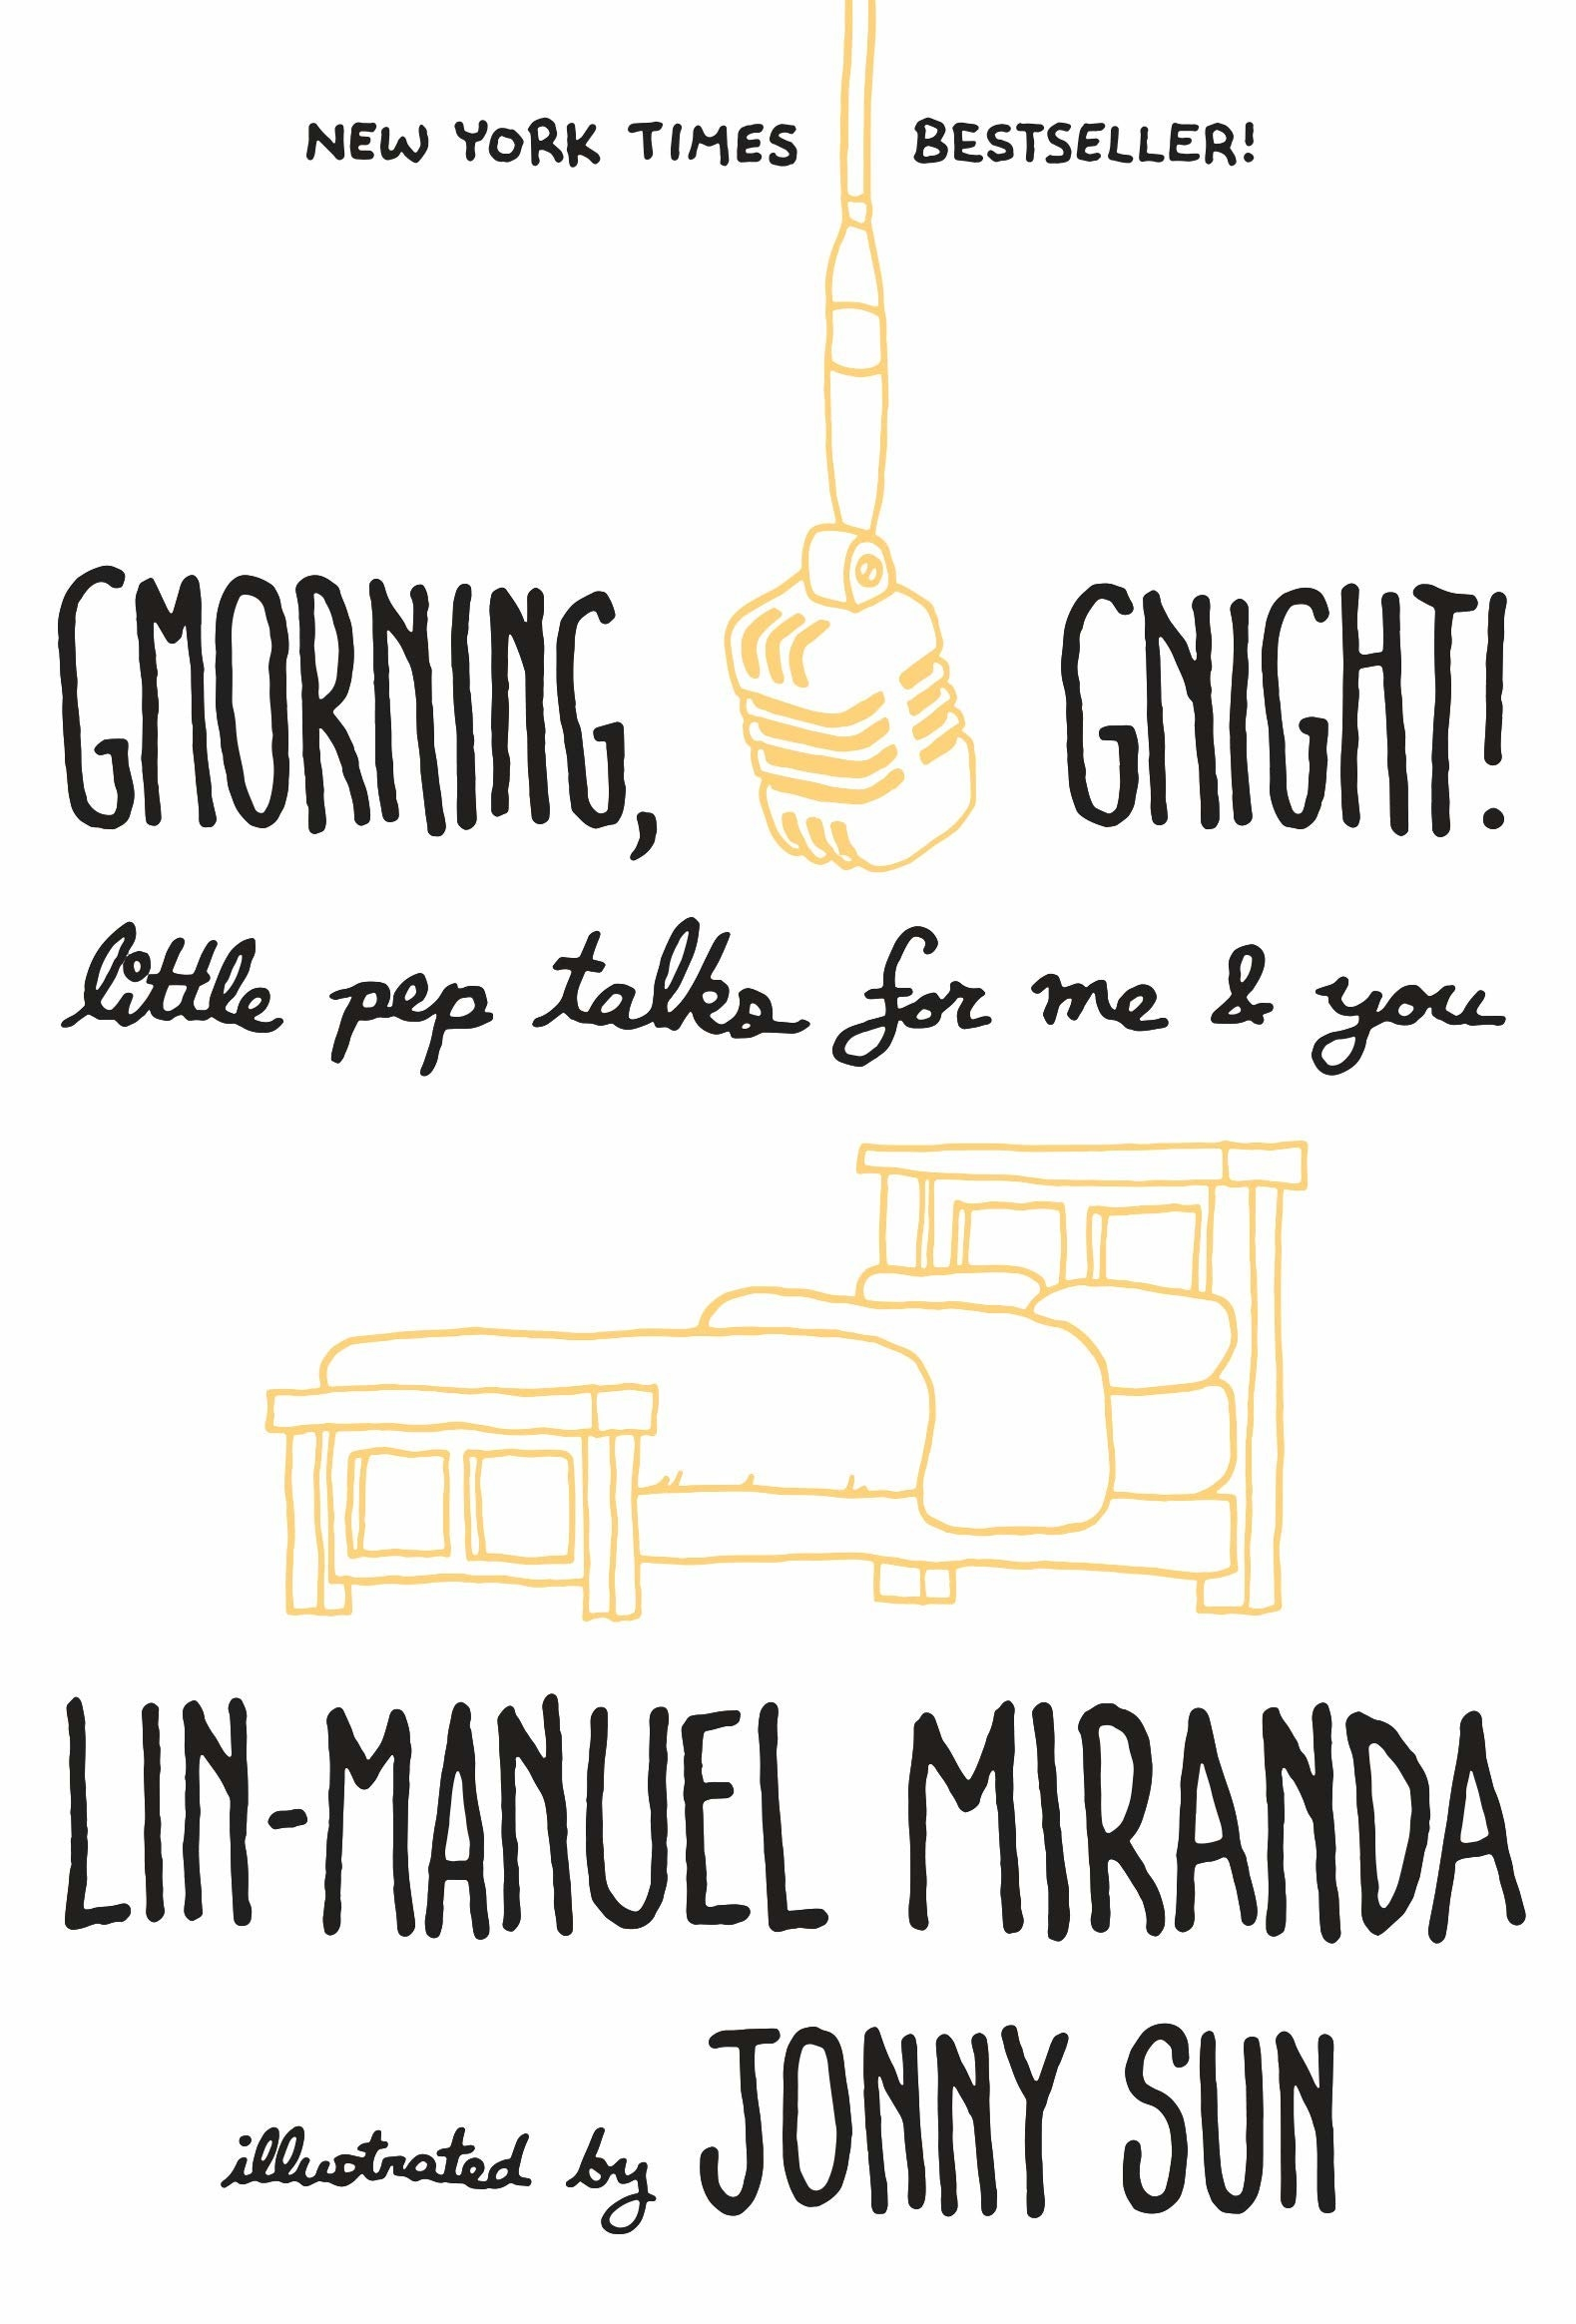 The cover of Gmorning, Gnight!: Little Pep Talks for Me & You